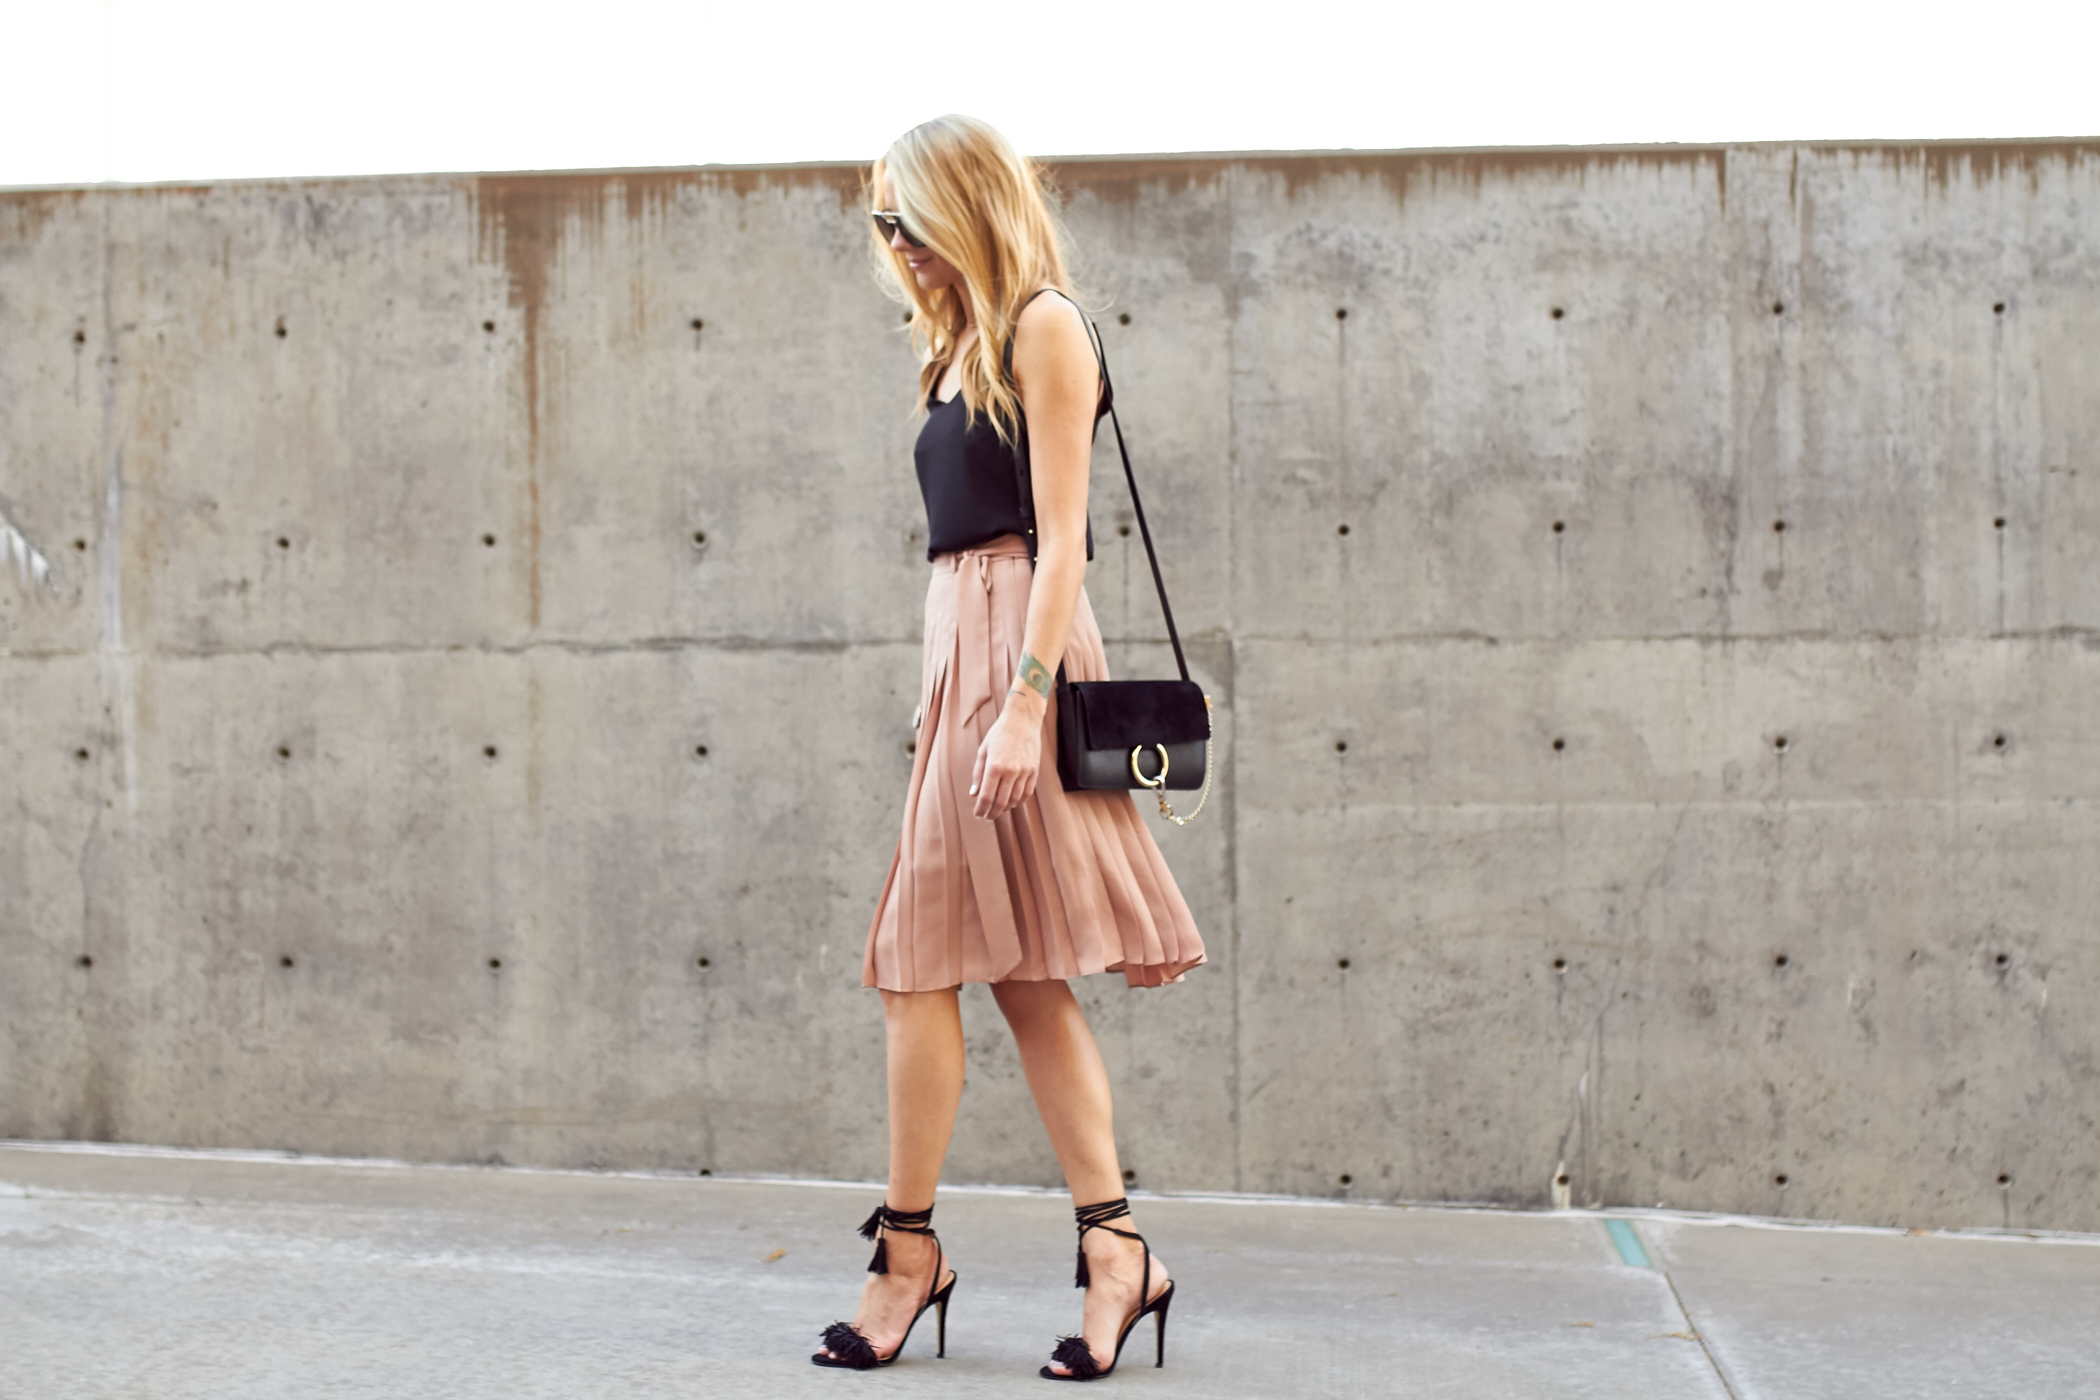 fashion-jackson-chloe-faye-handbag-pink-pleated-skirt